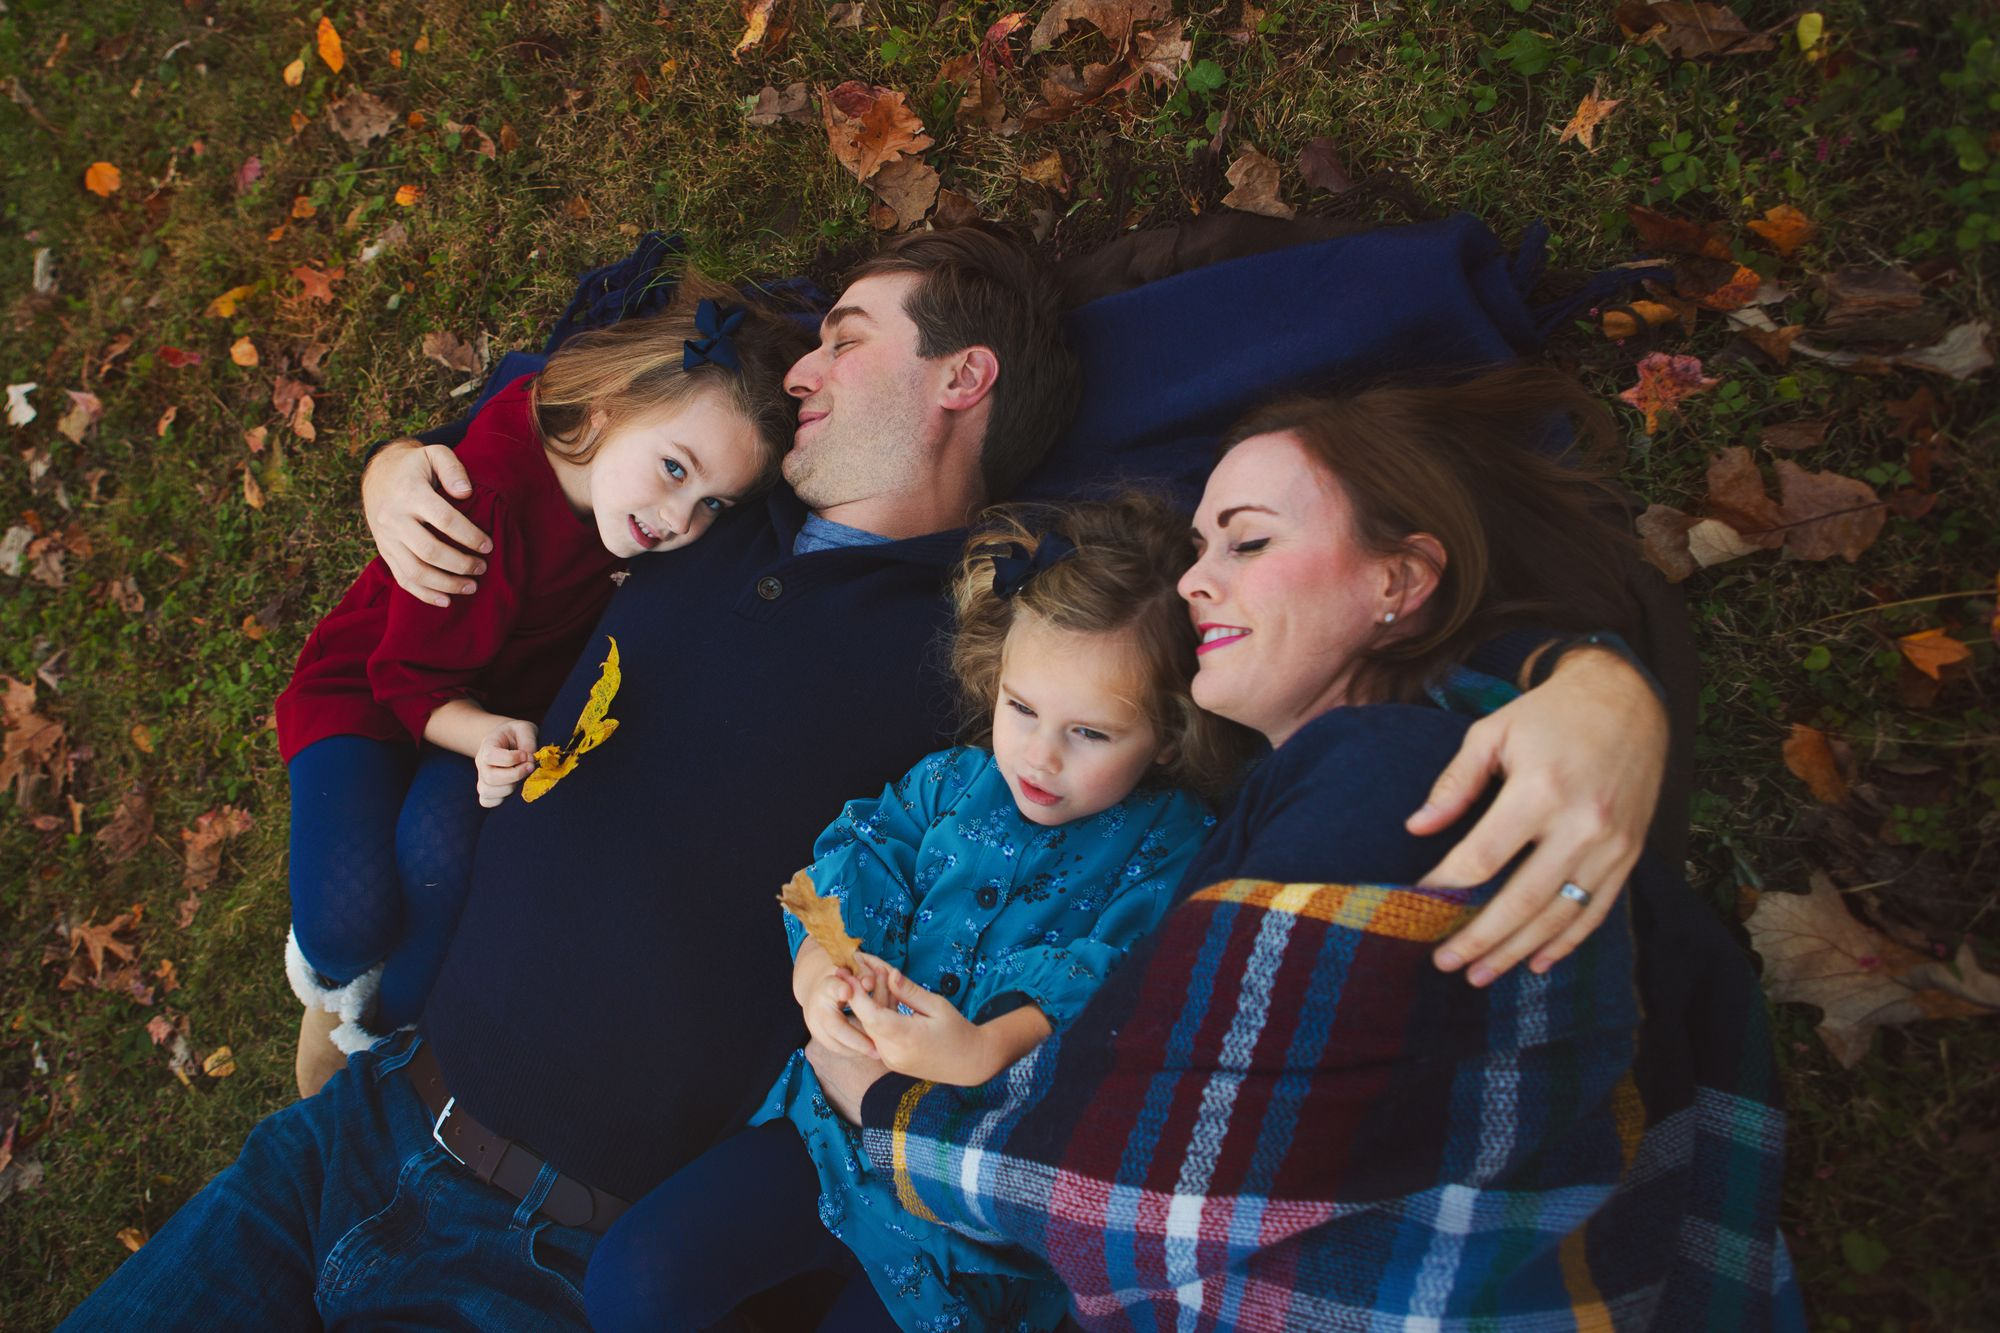 Family portrait on grass during outdoor photo shoot